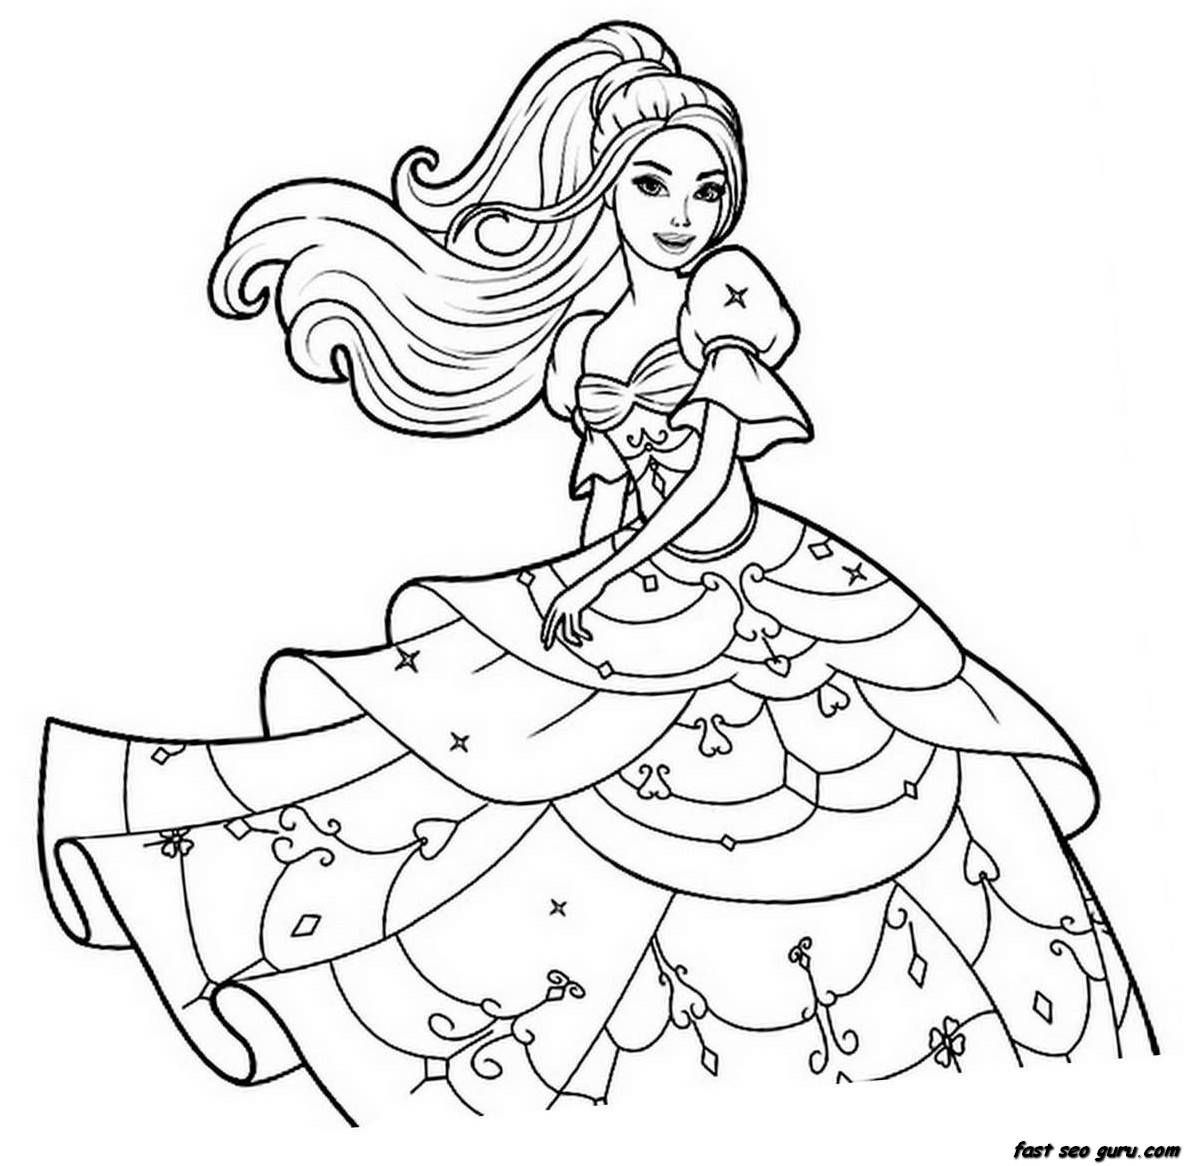 http://colorings.co/kids-printable-coloring-pages-for-girls ...